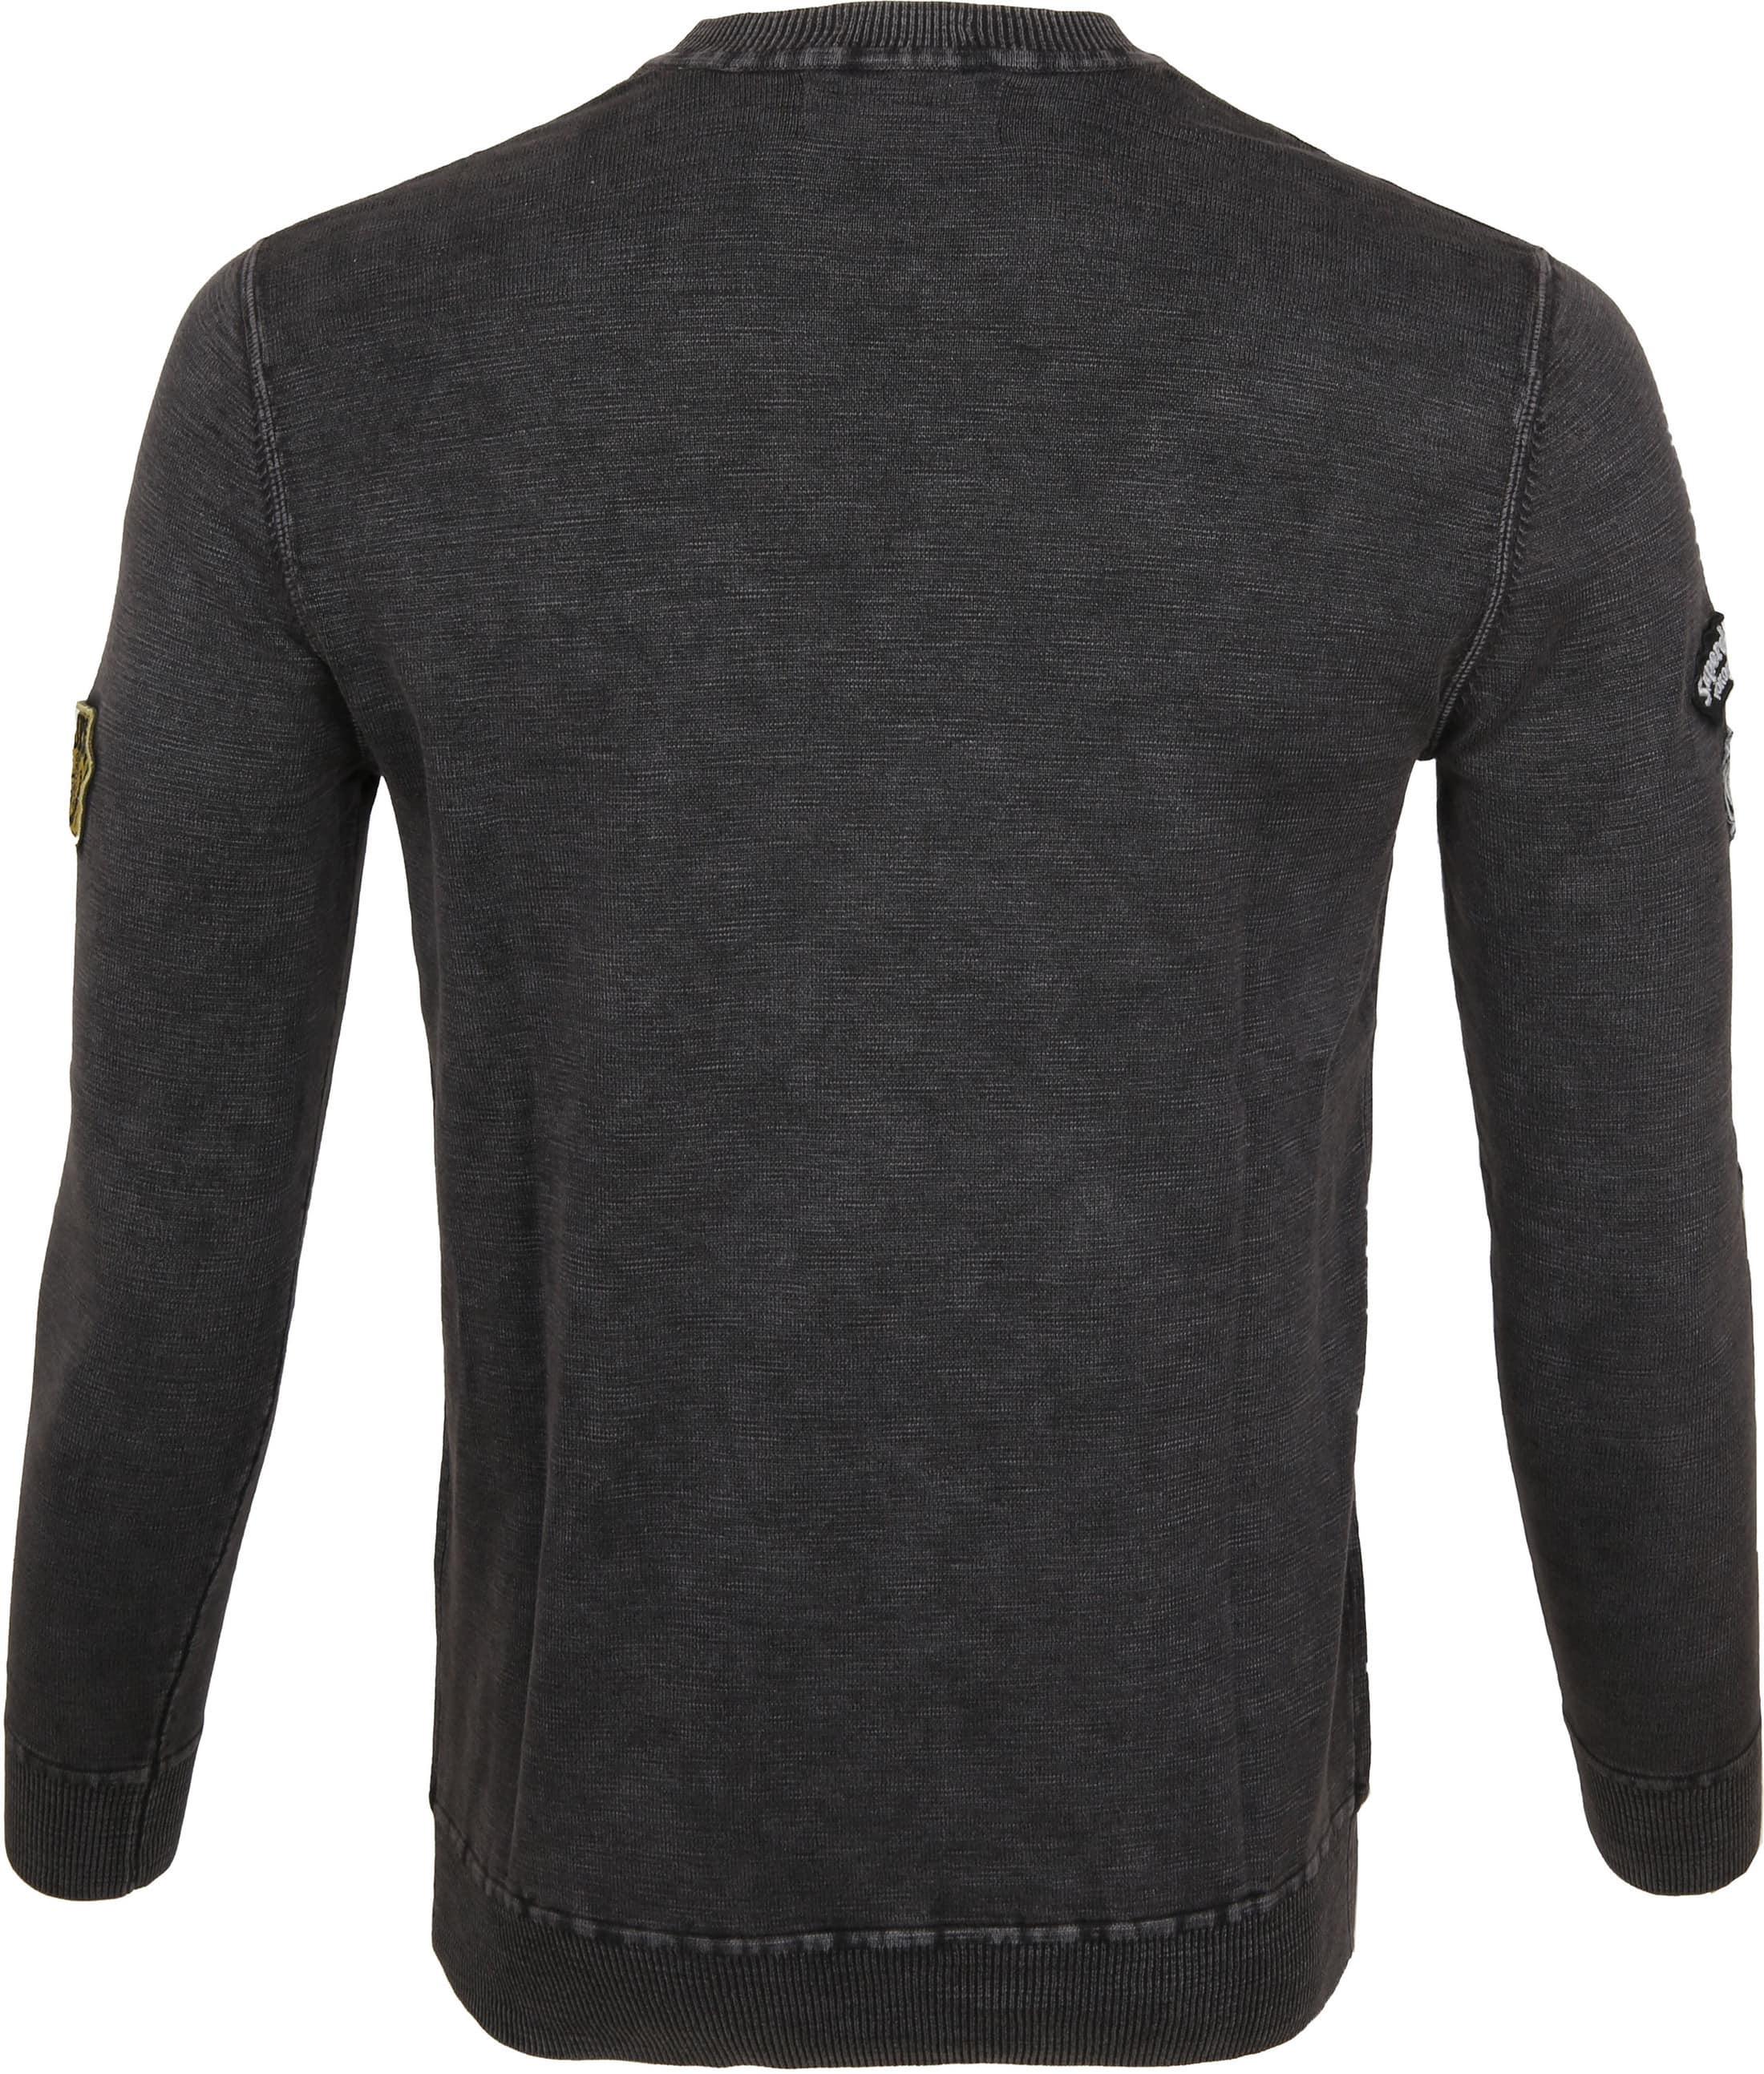 Superdry Sweater Badged Antraciet foto 2